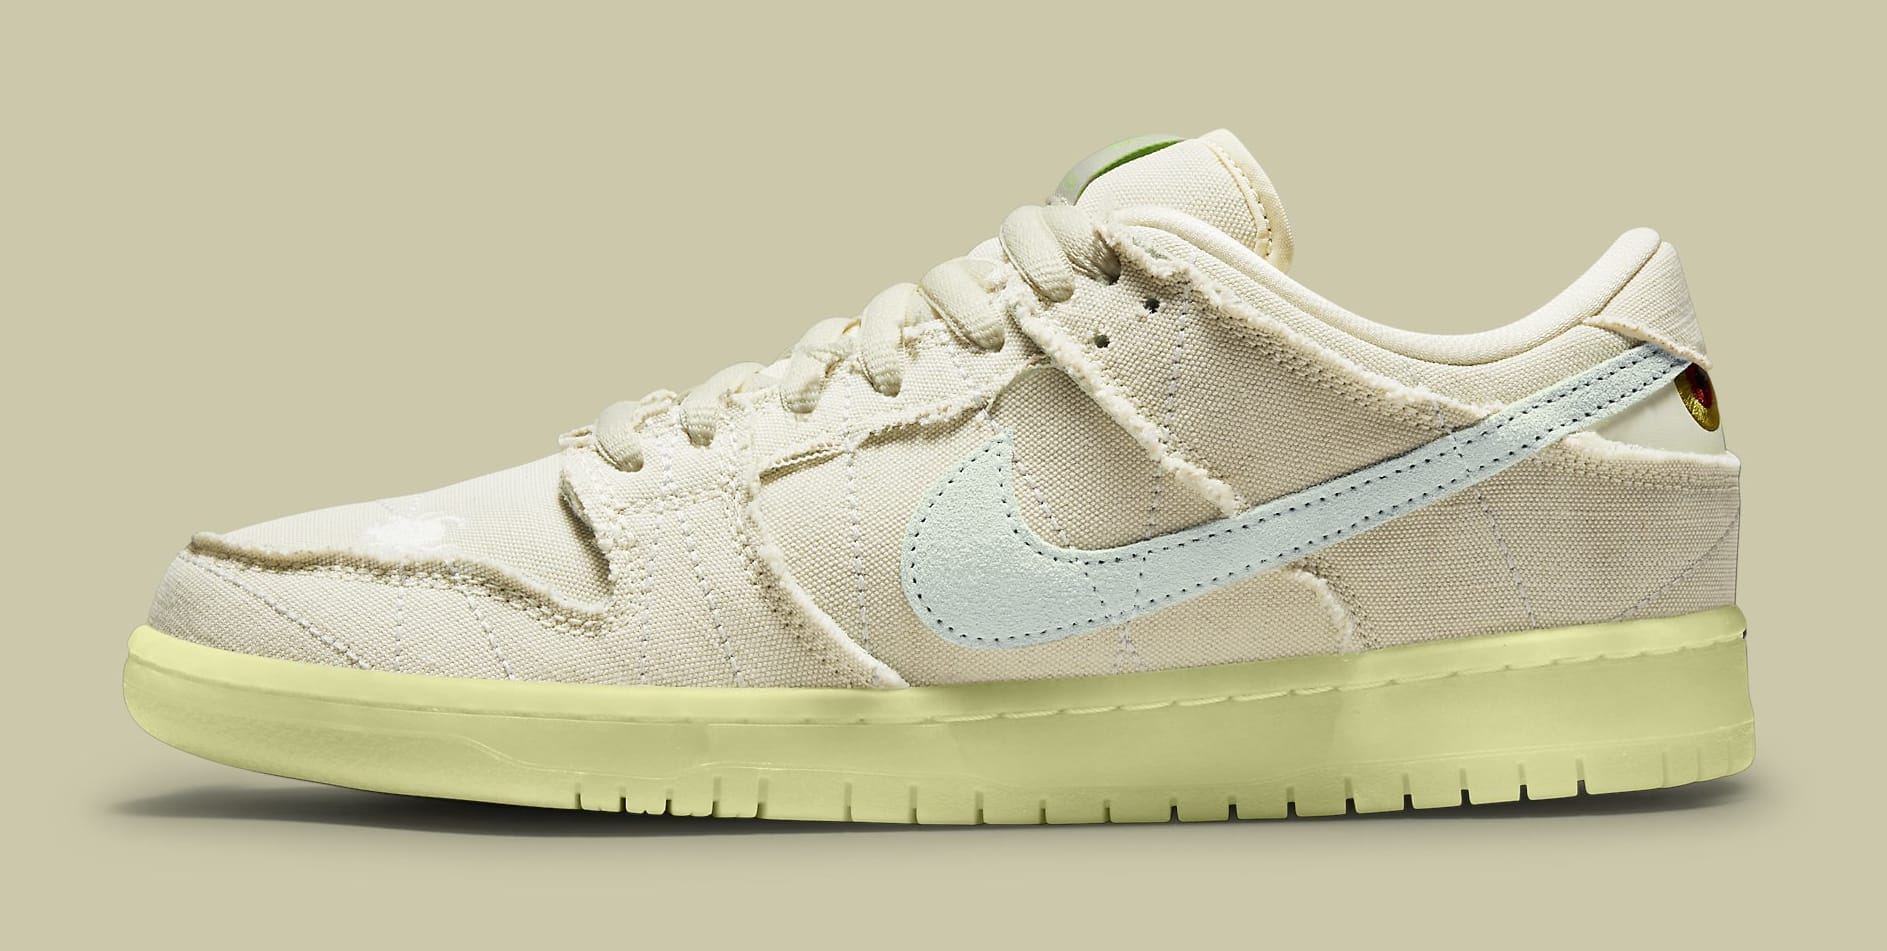 Nike SB Dunk Low 'Mummy' DM0774-111 Lateral